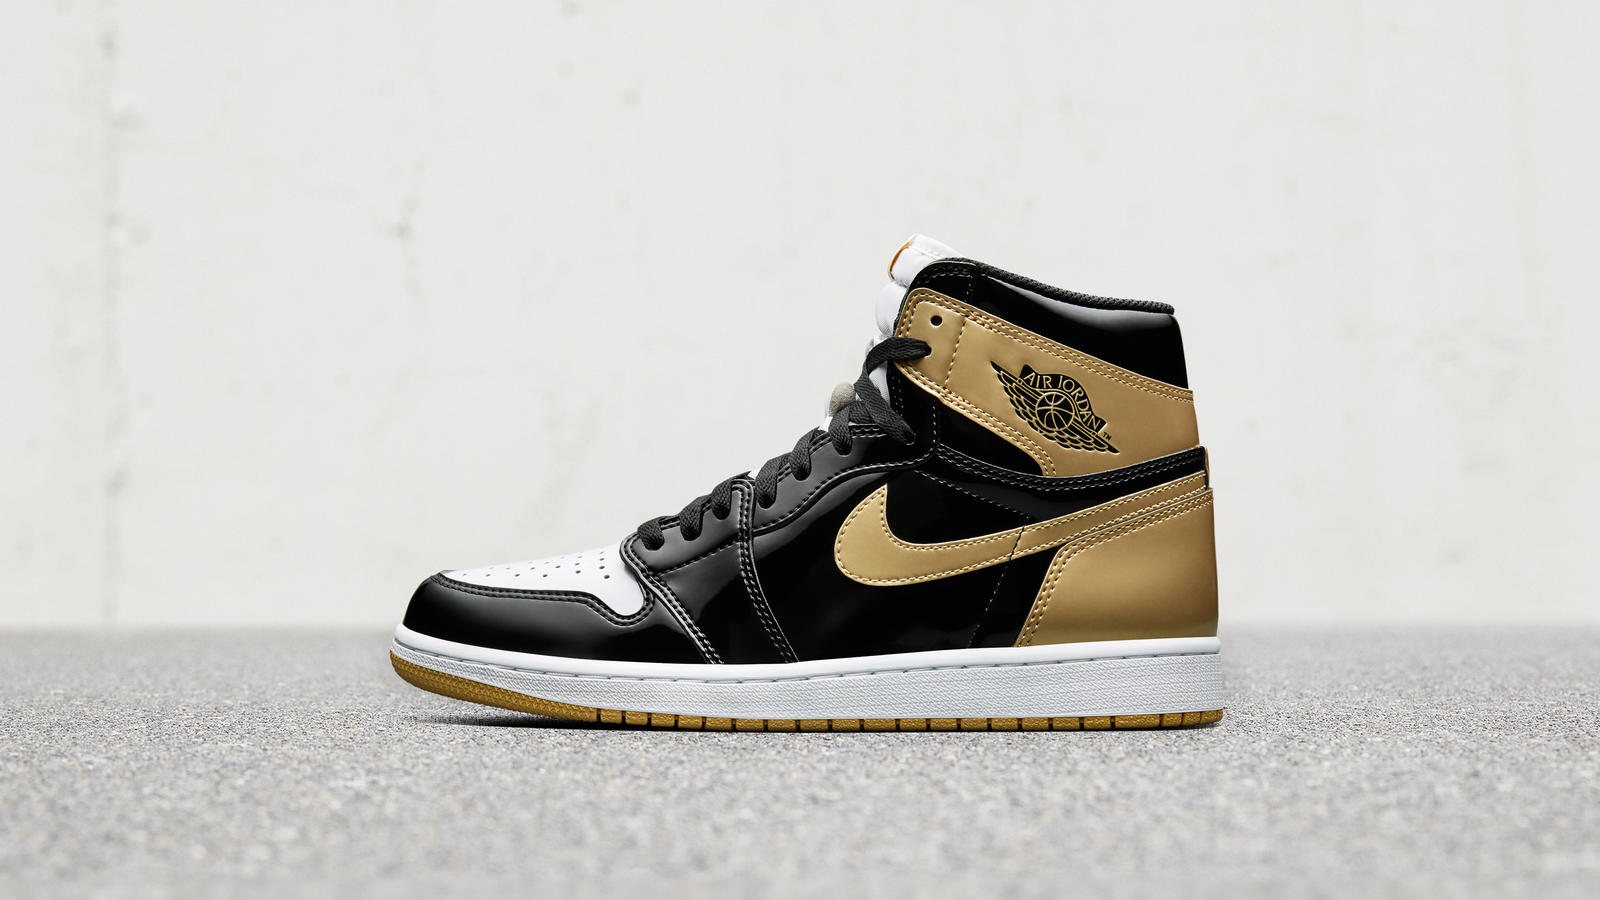 f0b12f4fbc7c25 Air Jordan 1 Top 3 Gold - Nike News